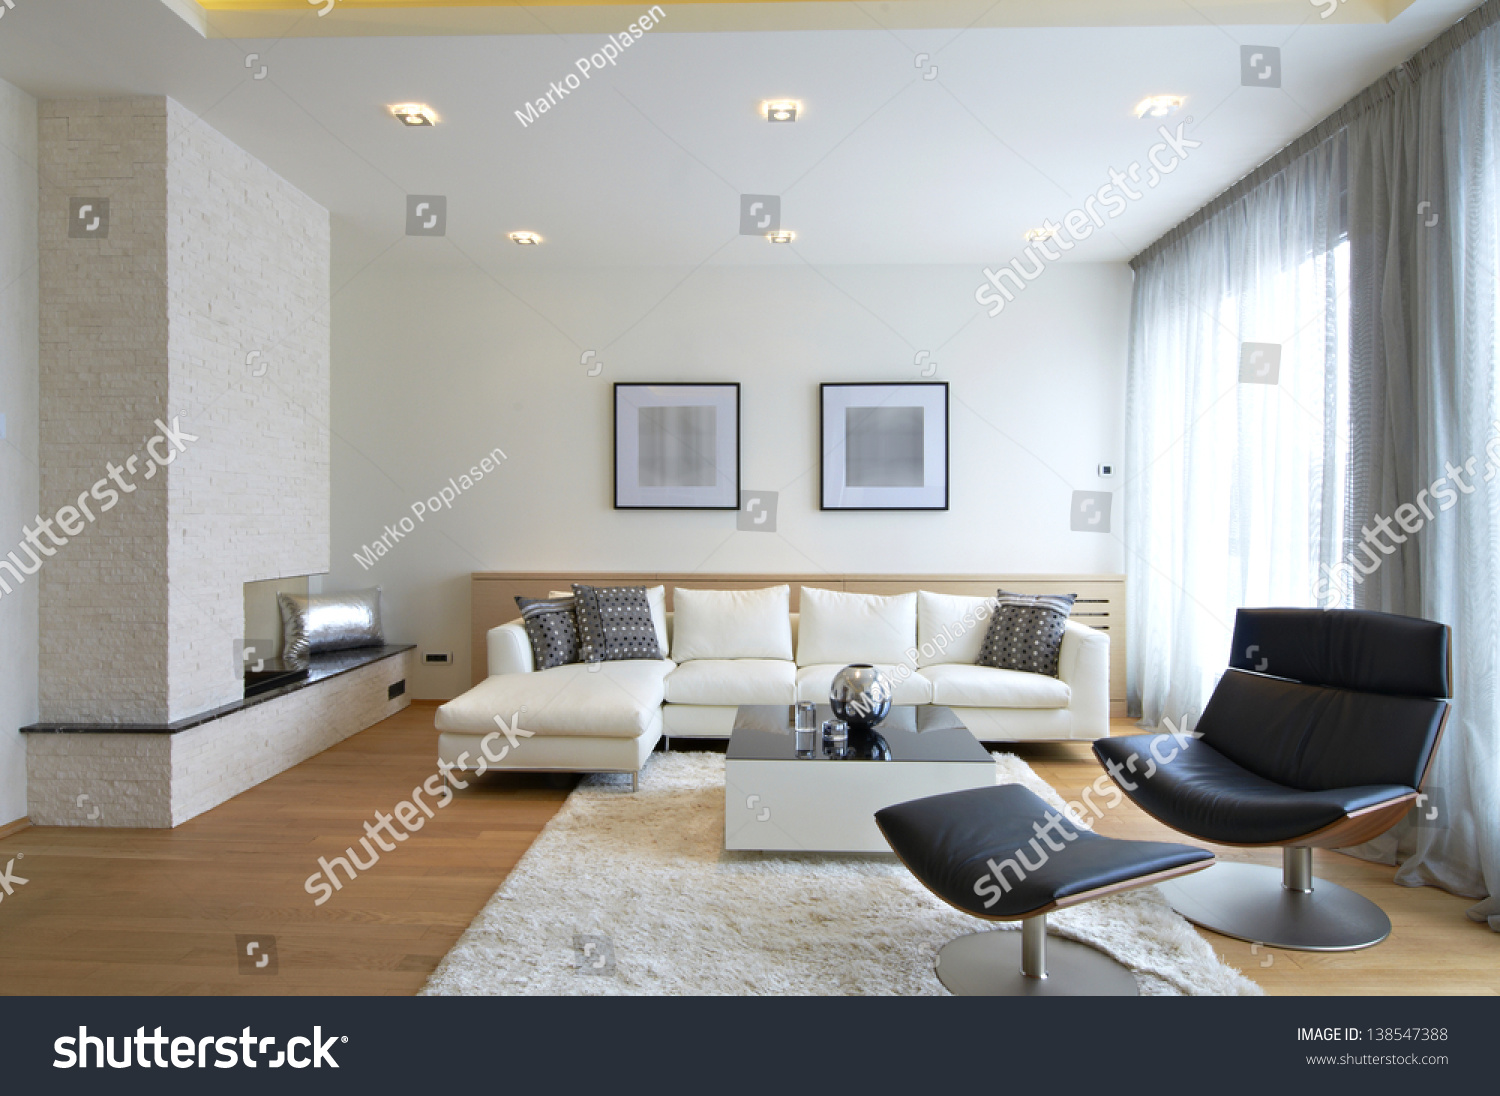 New Interior Designs For Living Room: Modern Living Room Interior Stock Photo 138547388